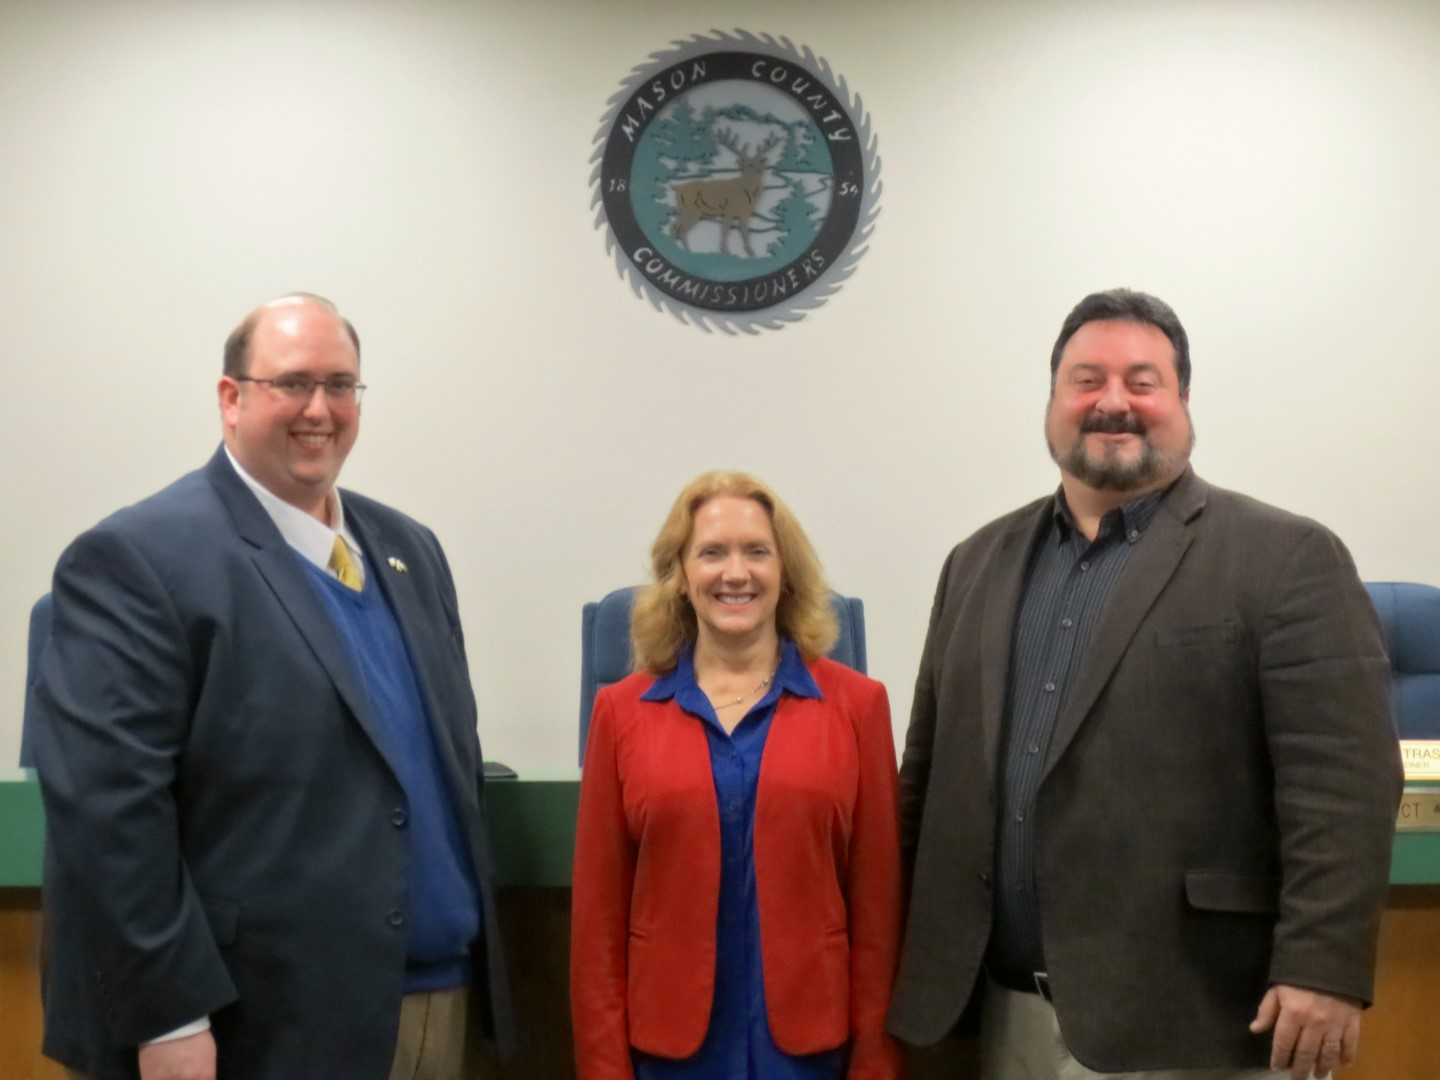 Mason County Commissioners